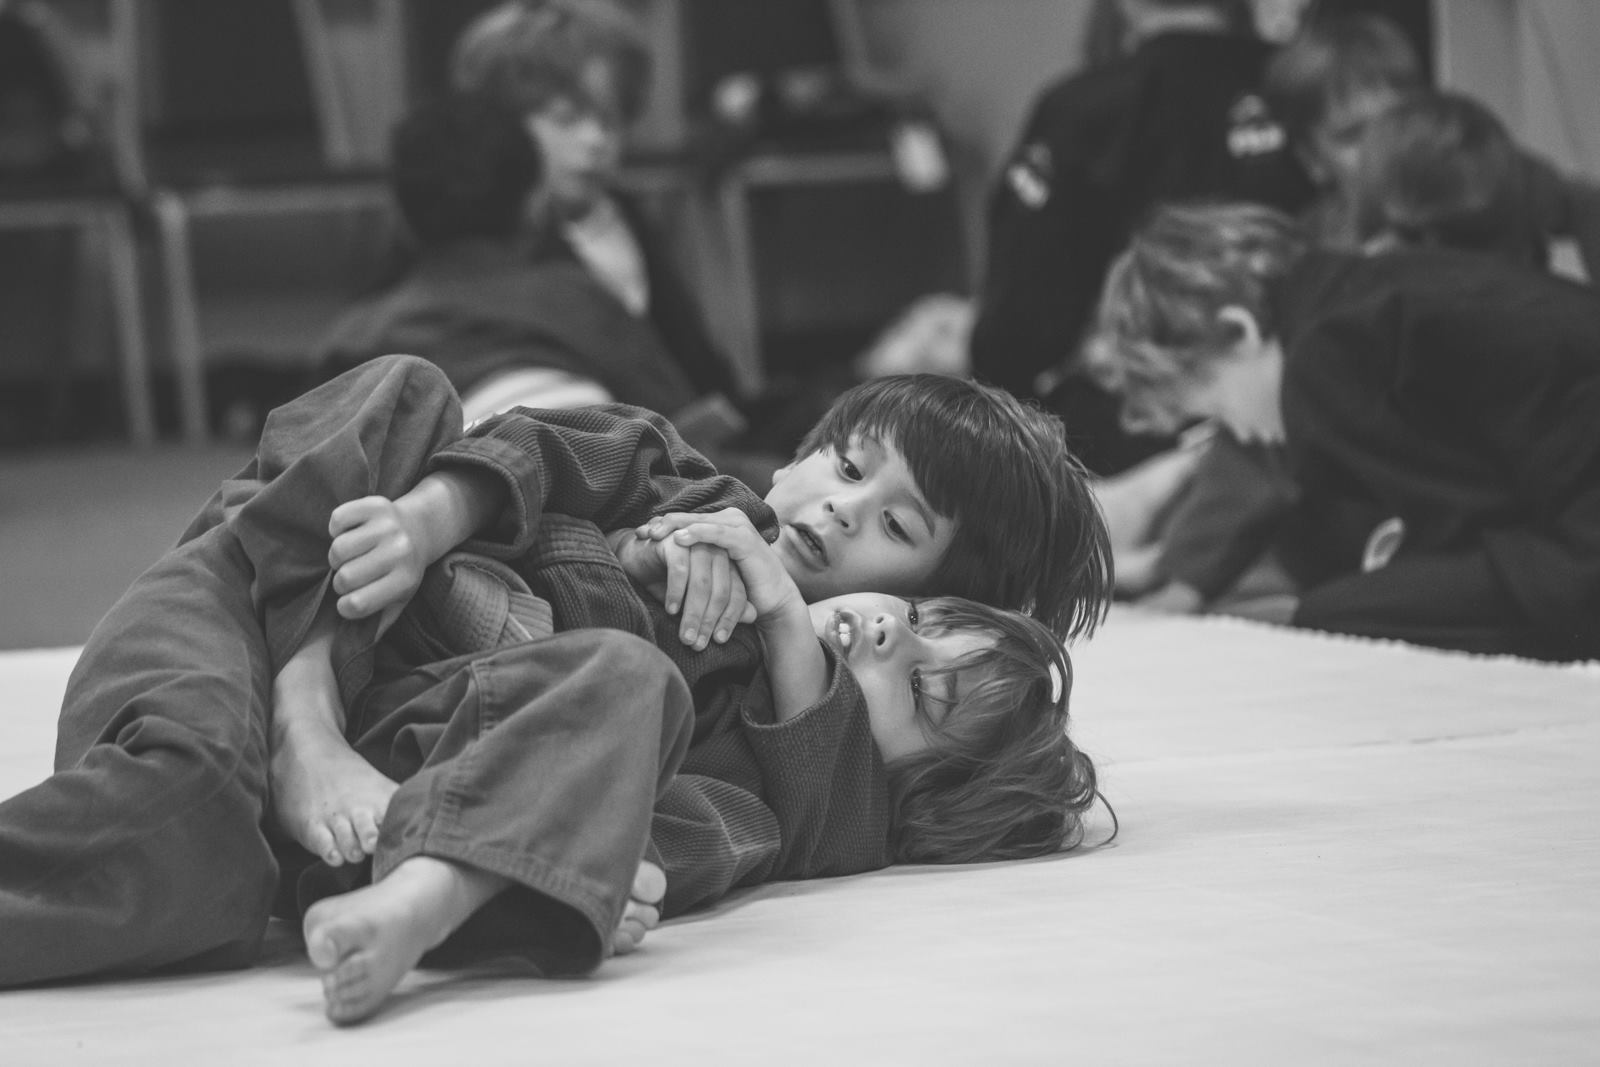 2 dedicated Jiu Jitsu kids Yong Yi and Gus working the back take